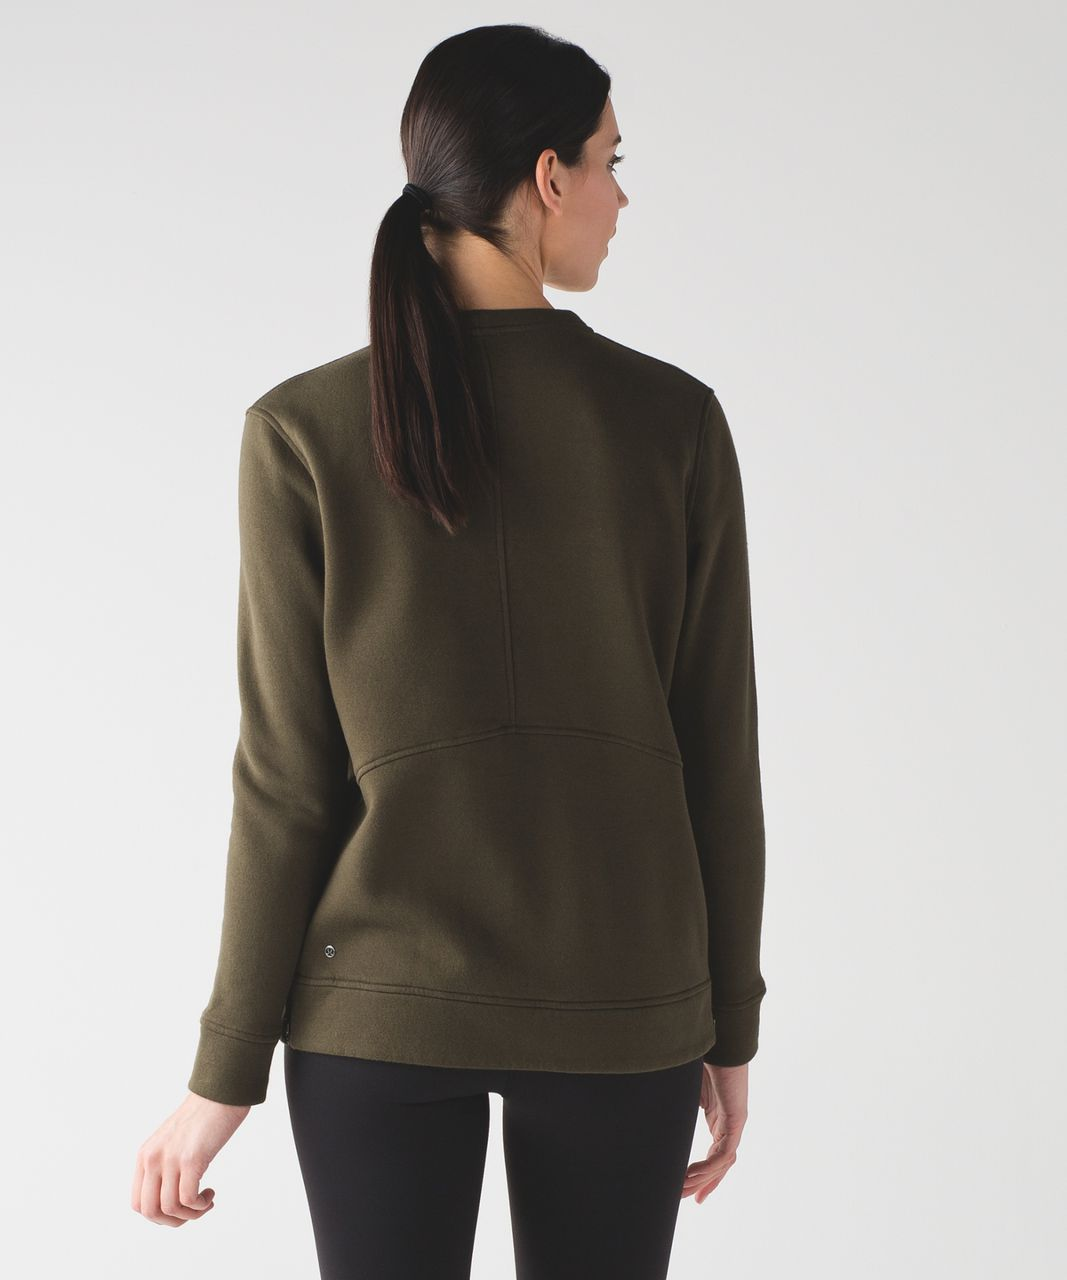 Lululemon Yes Fleece Pullover - Military Green - lulu fanatics